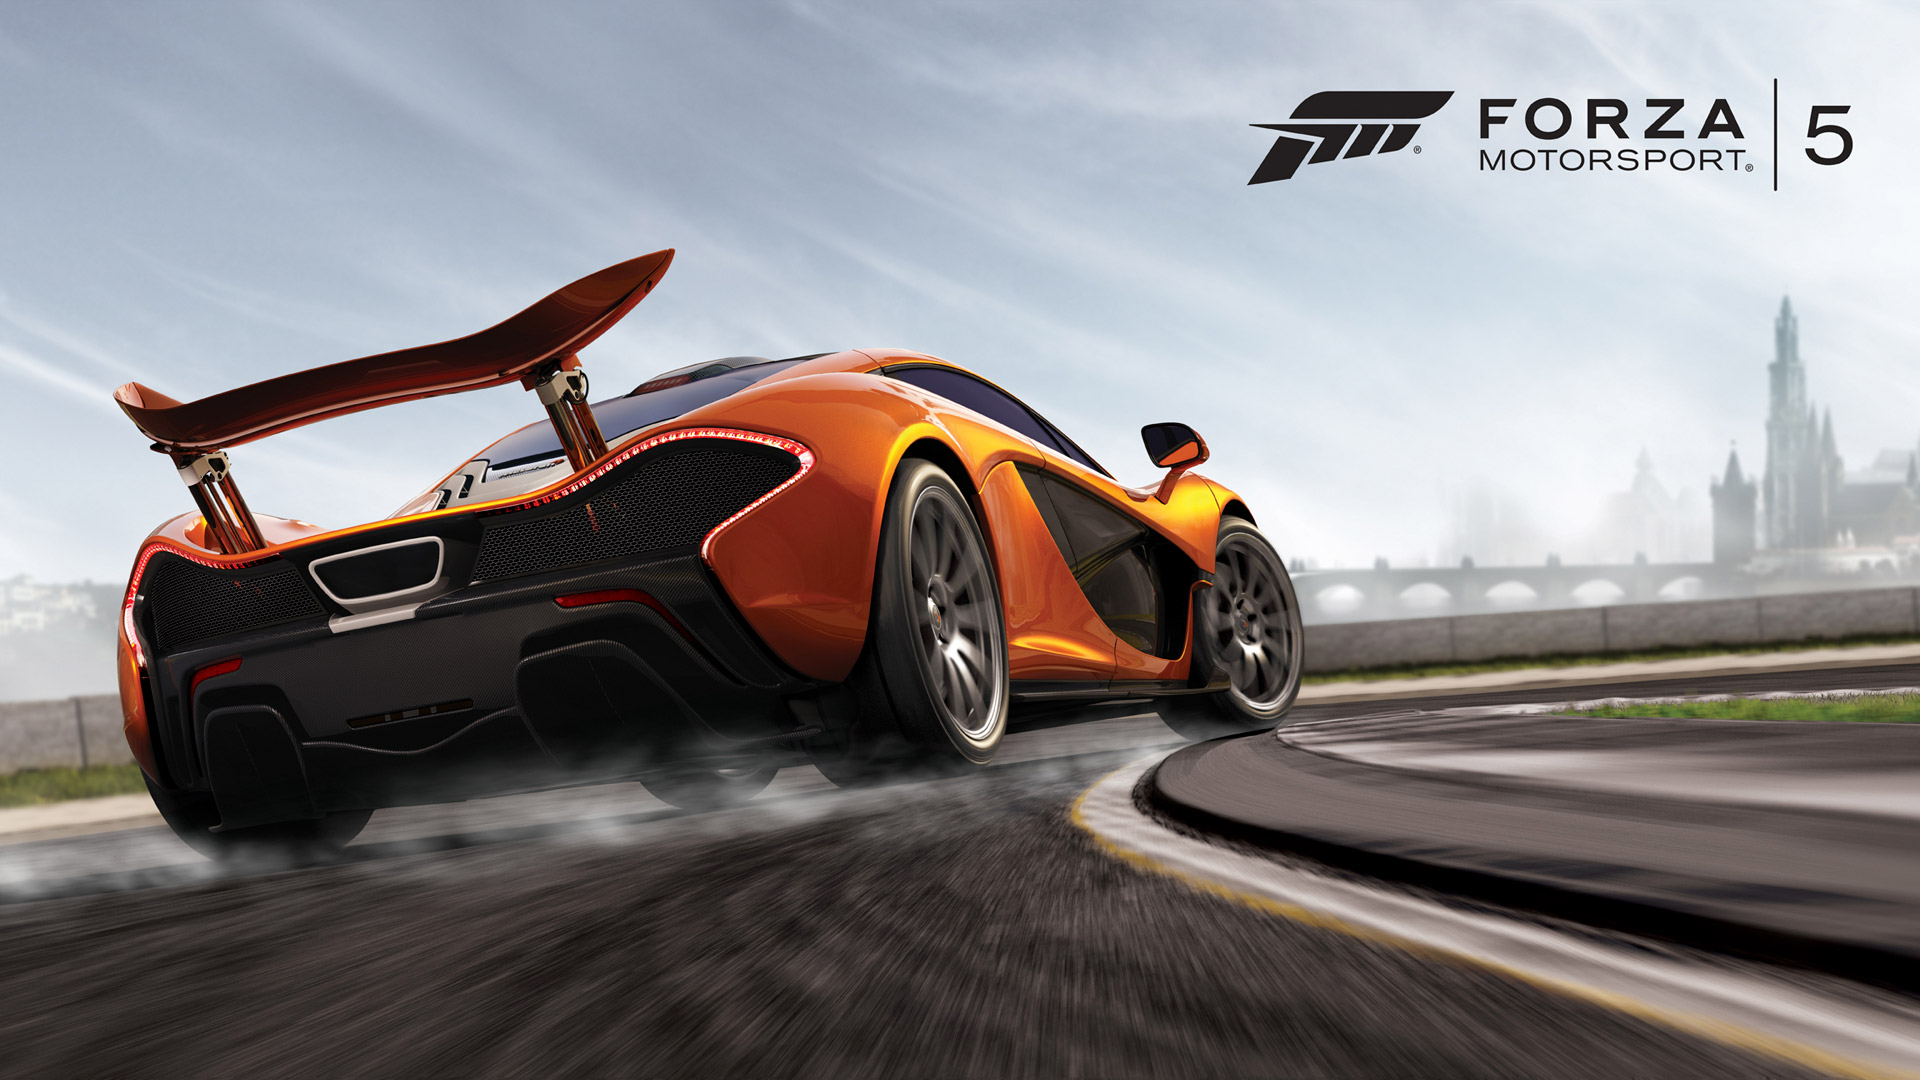 Forza Motorsport 5 Wallpaper in 1920x1080